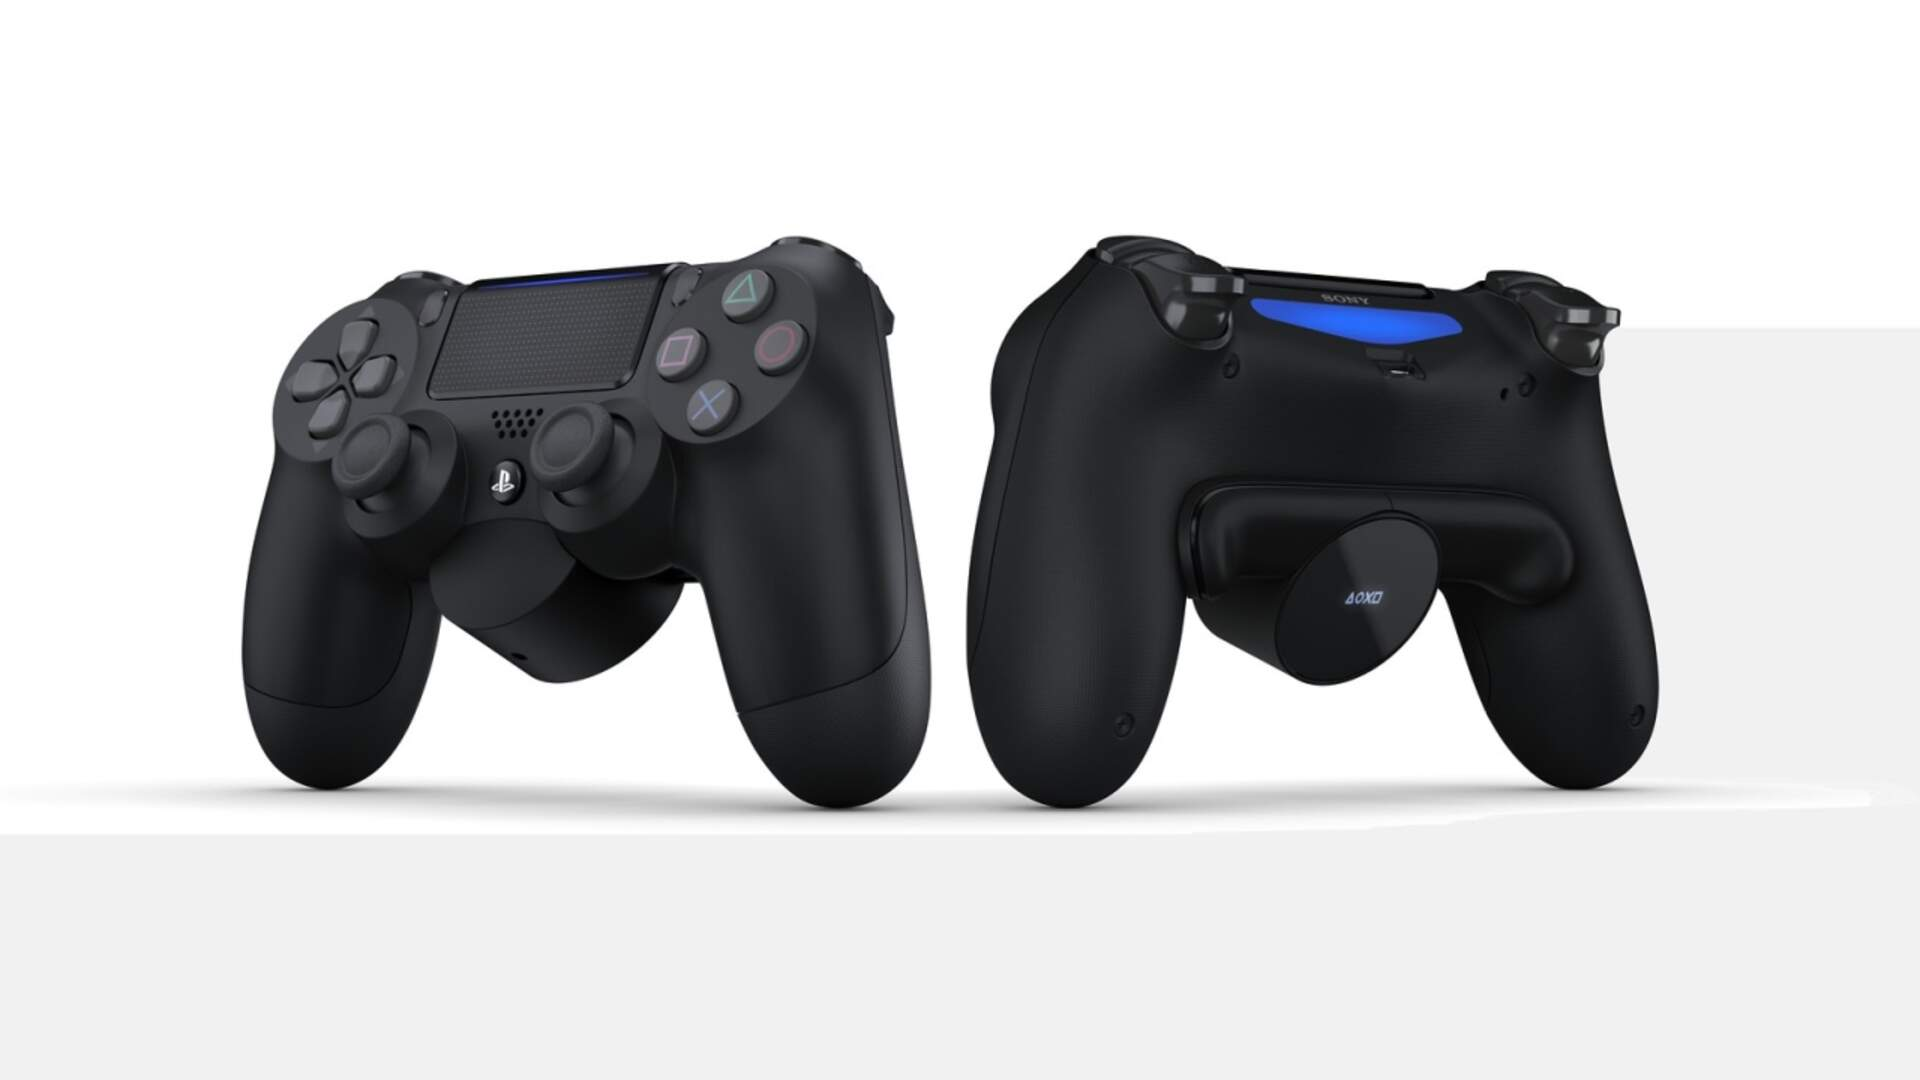 PlayStation's Back Button Attachment Finally Makes More Use of That Bottom Port